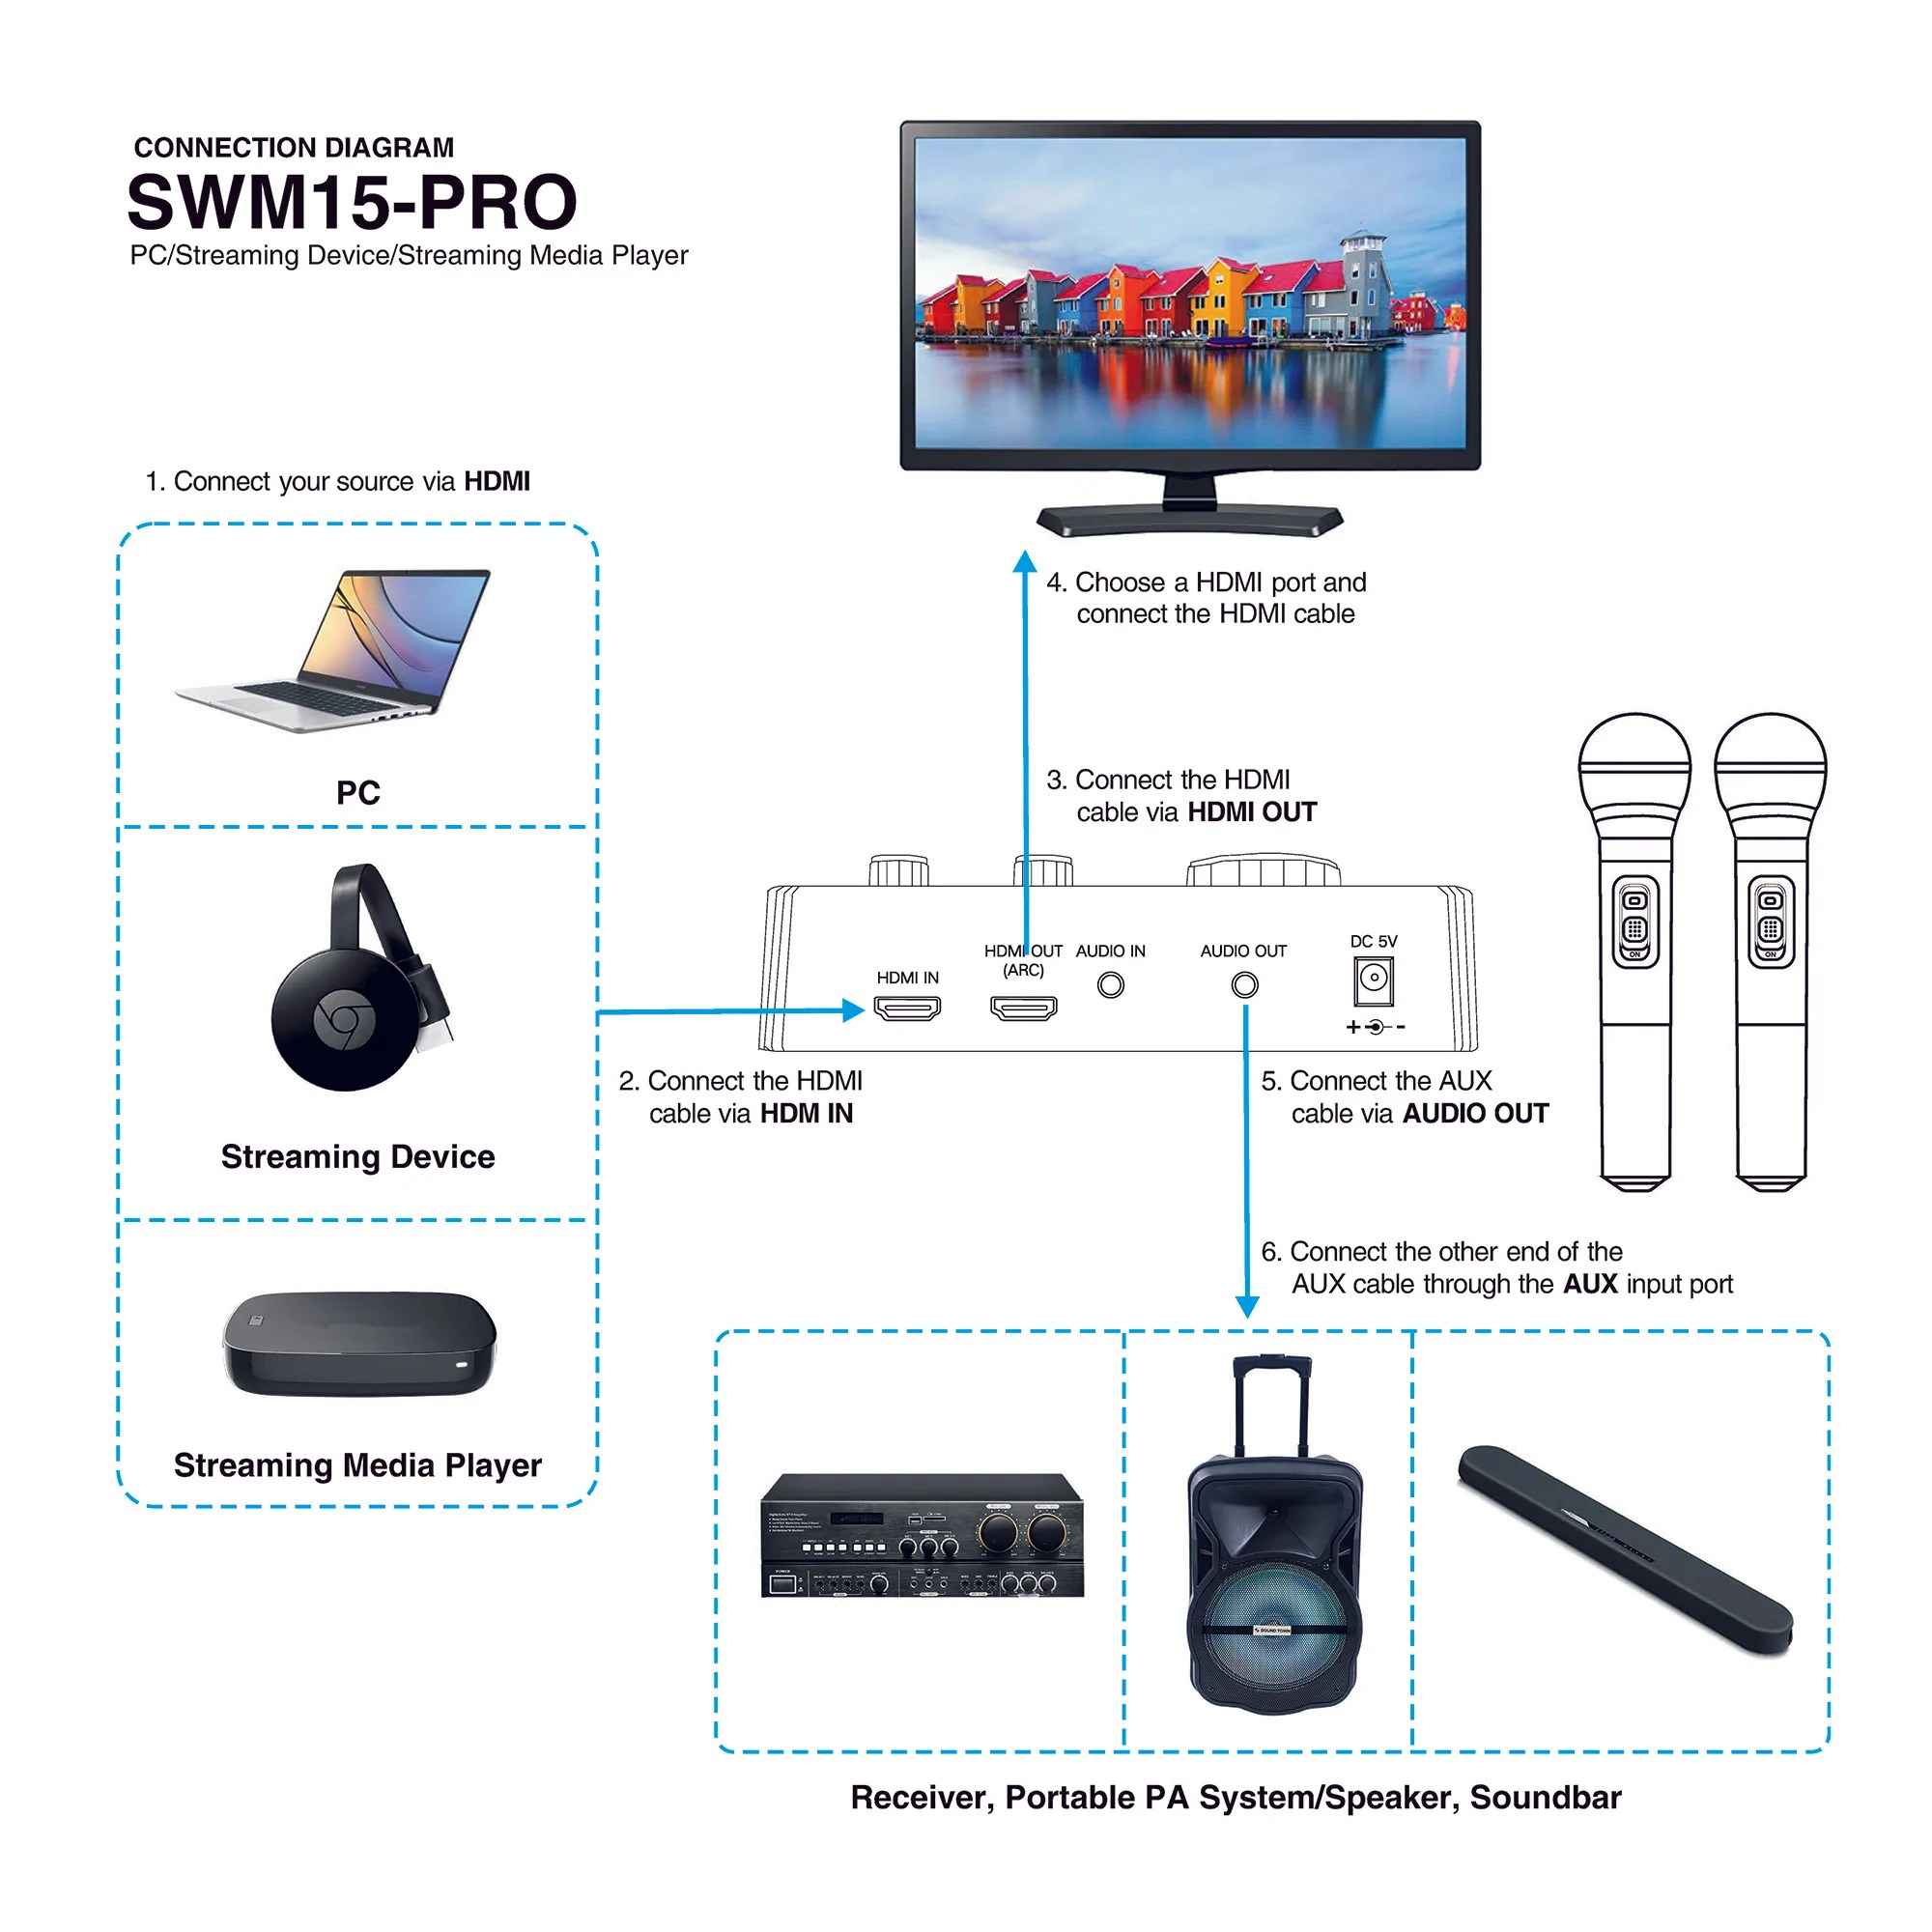 small resolution of swm15 pro pc streaming device laptop google chromecast media player connection diagram how to connect